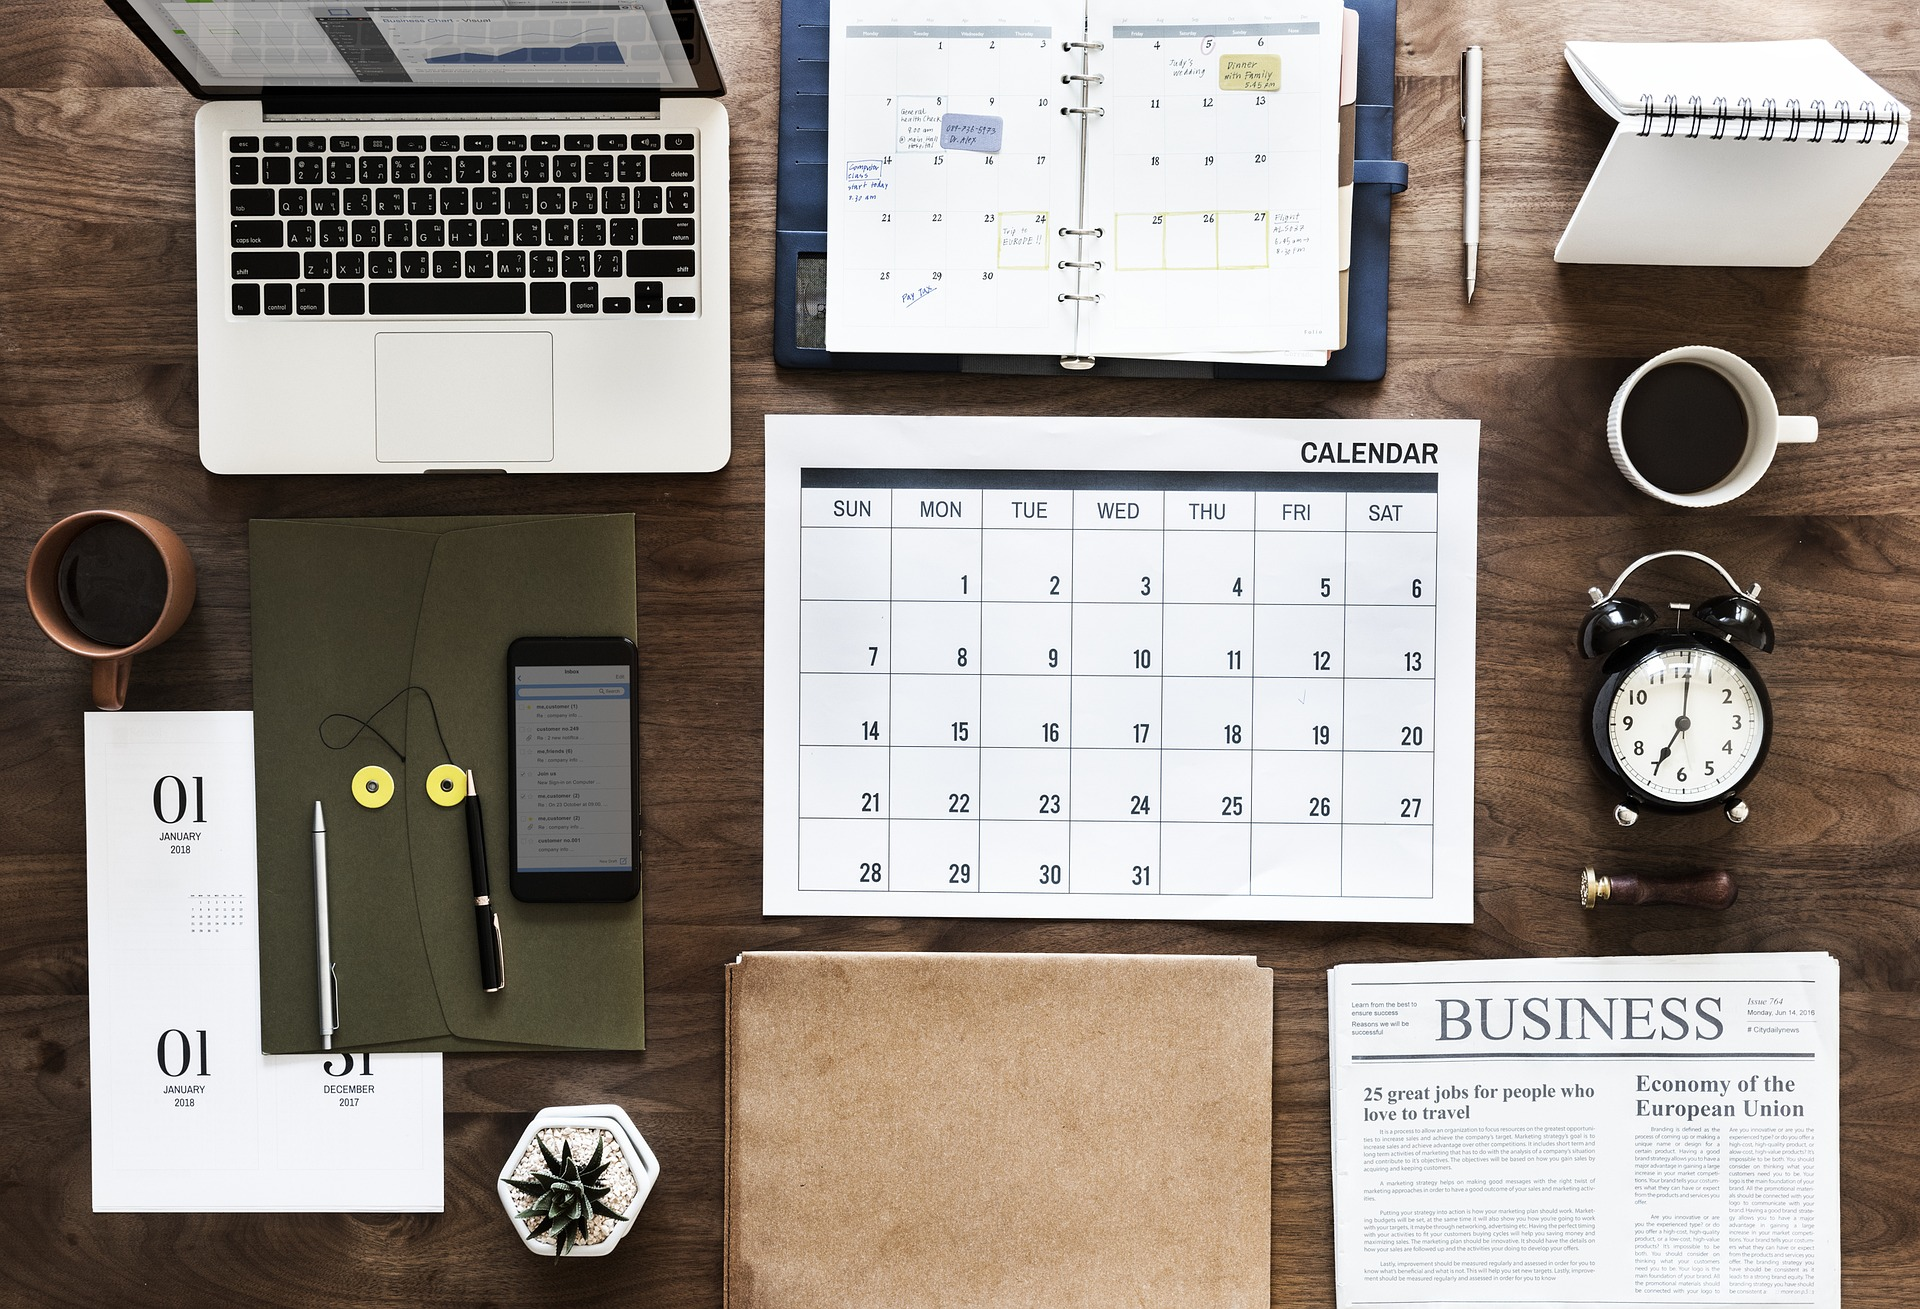 Wondering how to manage team vacation requests, when your staff wants time off? Here's how to prioritize vacation and why you should promote paid vacation.